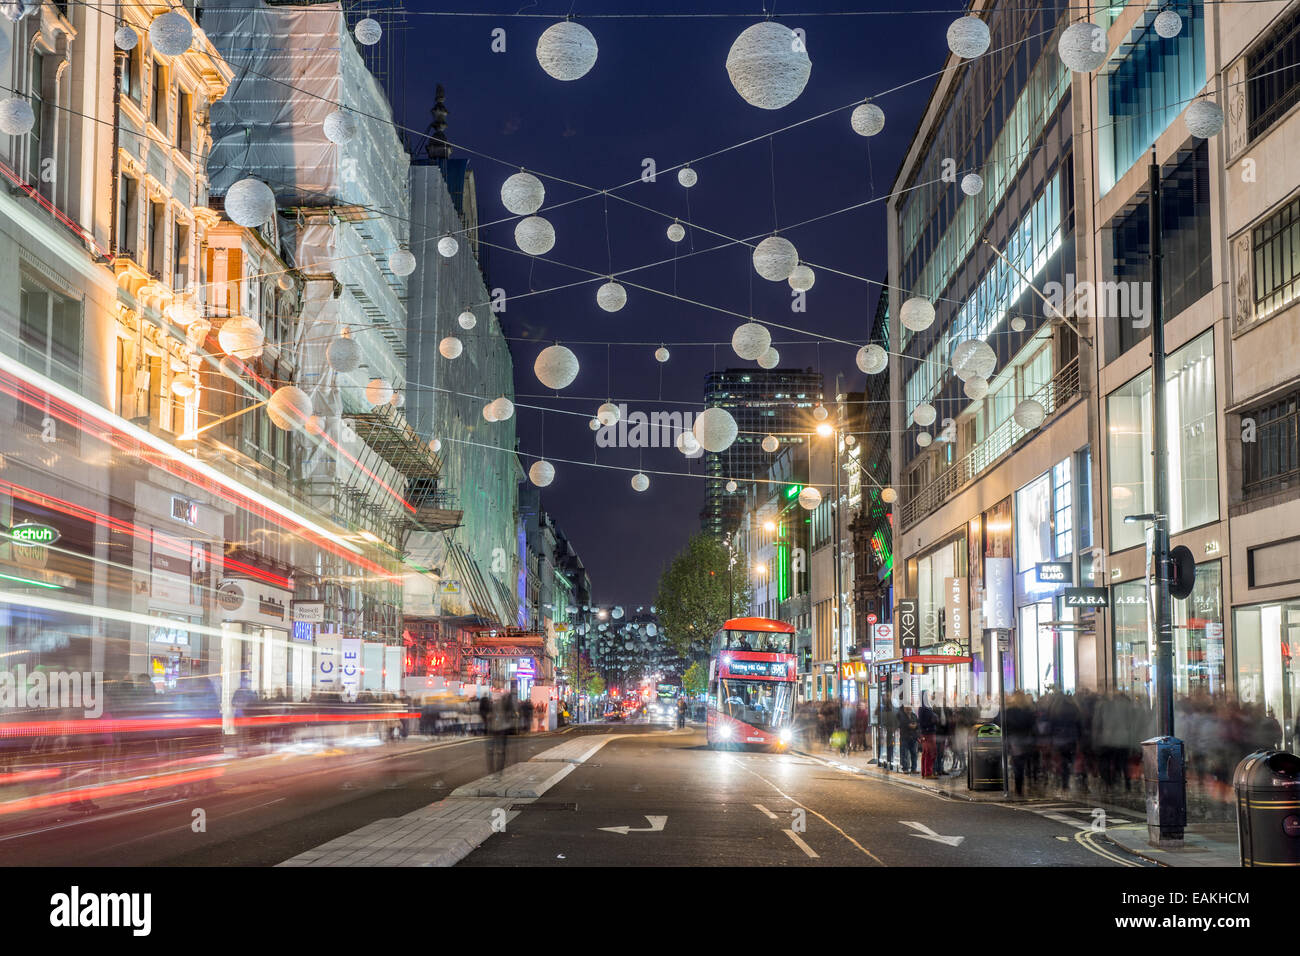 oxford street london christmas decorations stock image - London Christmas Decorations